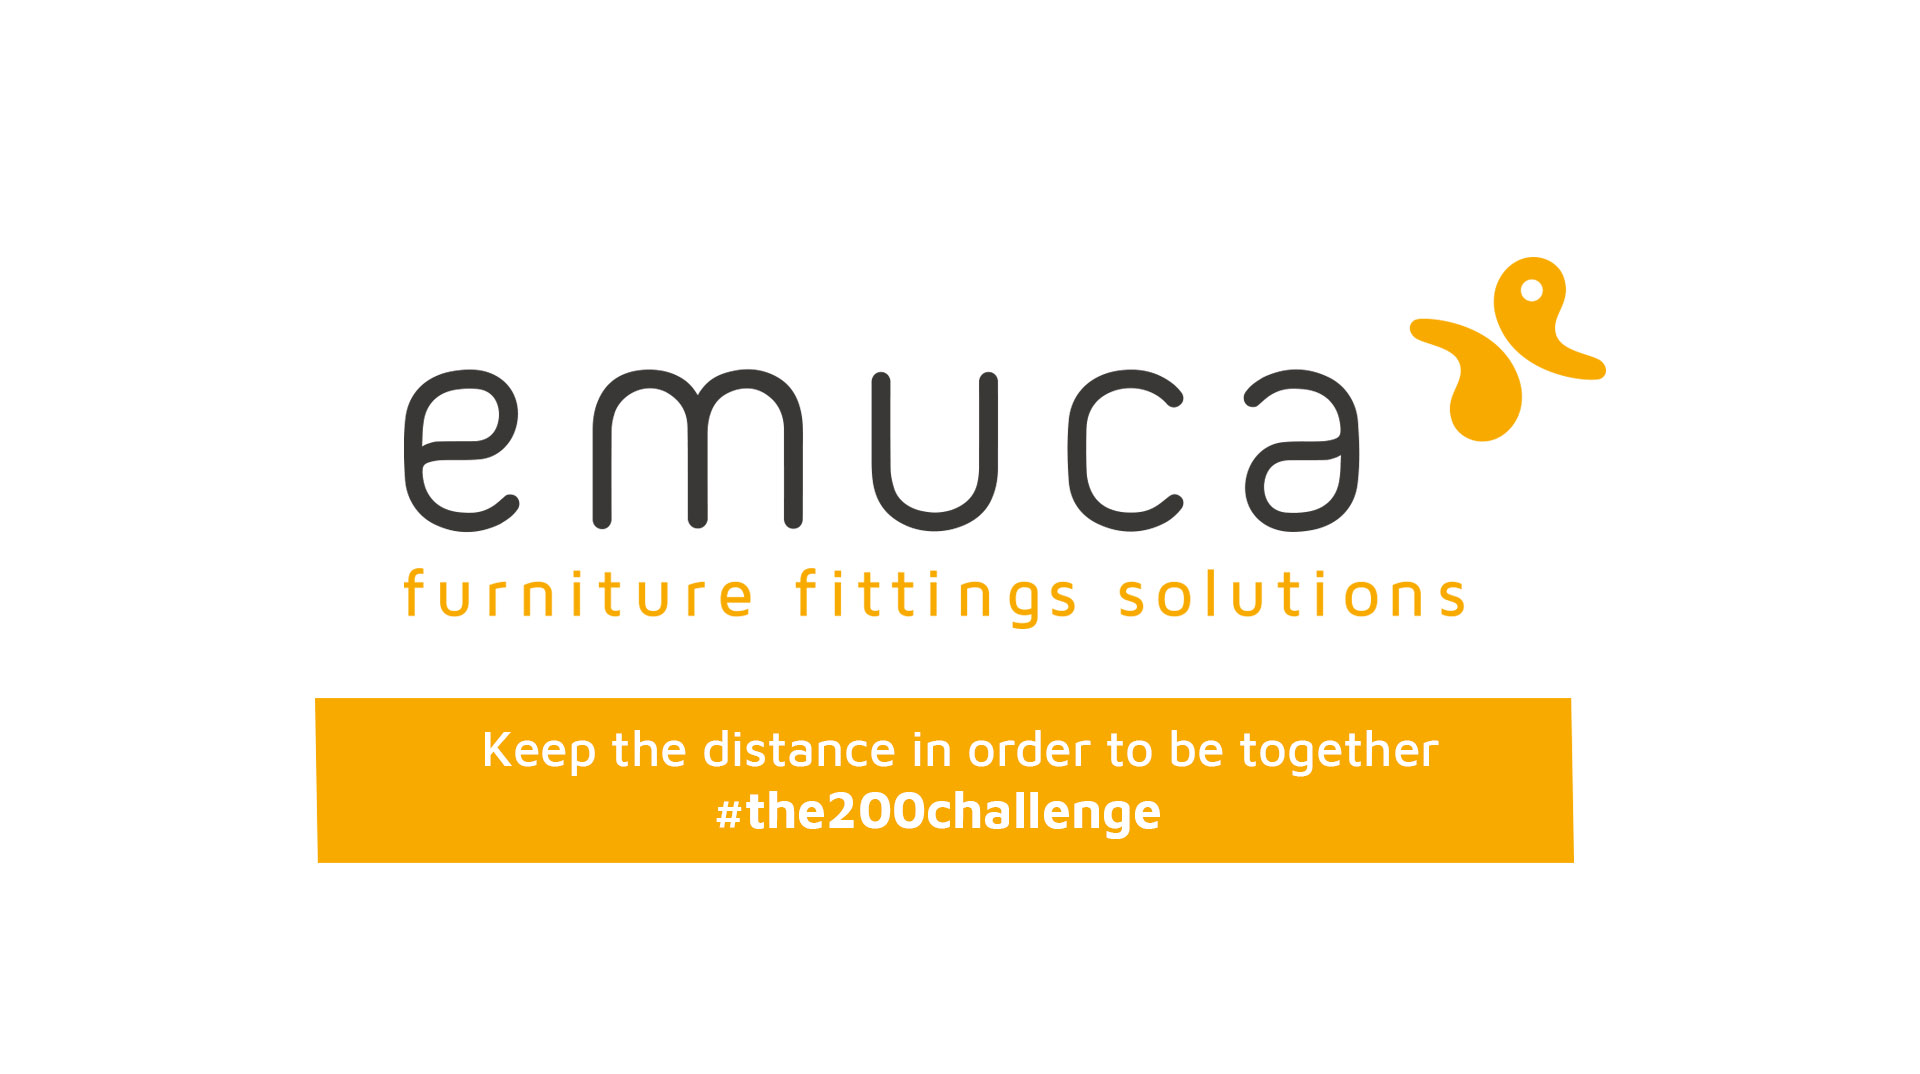 We join the global challenge #The200Challenge